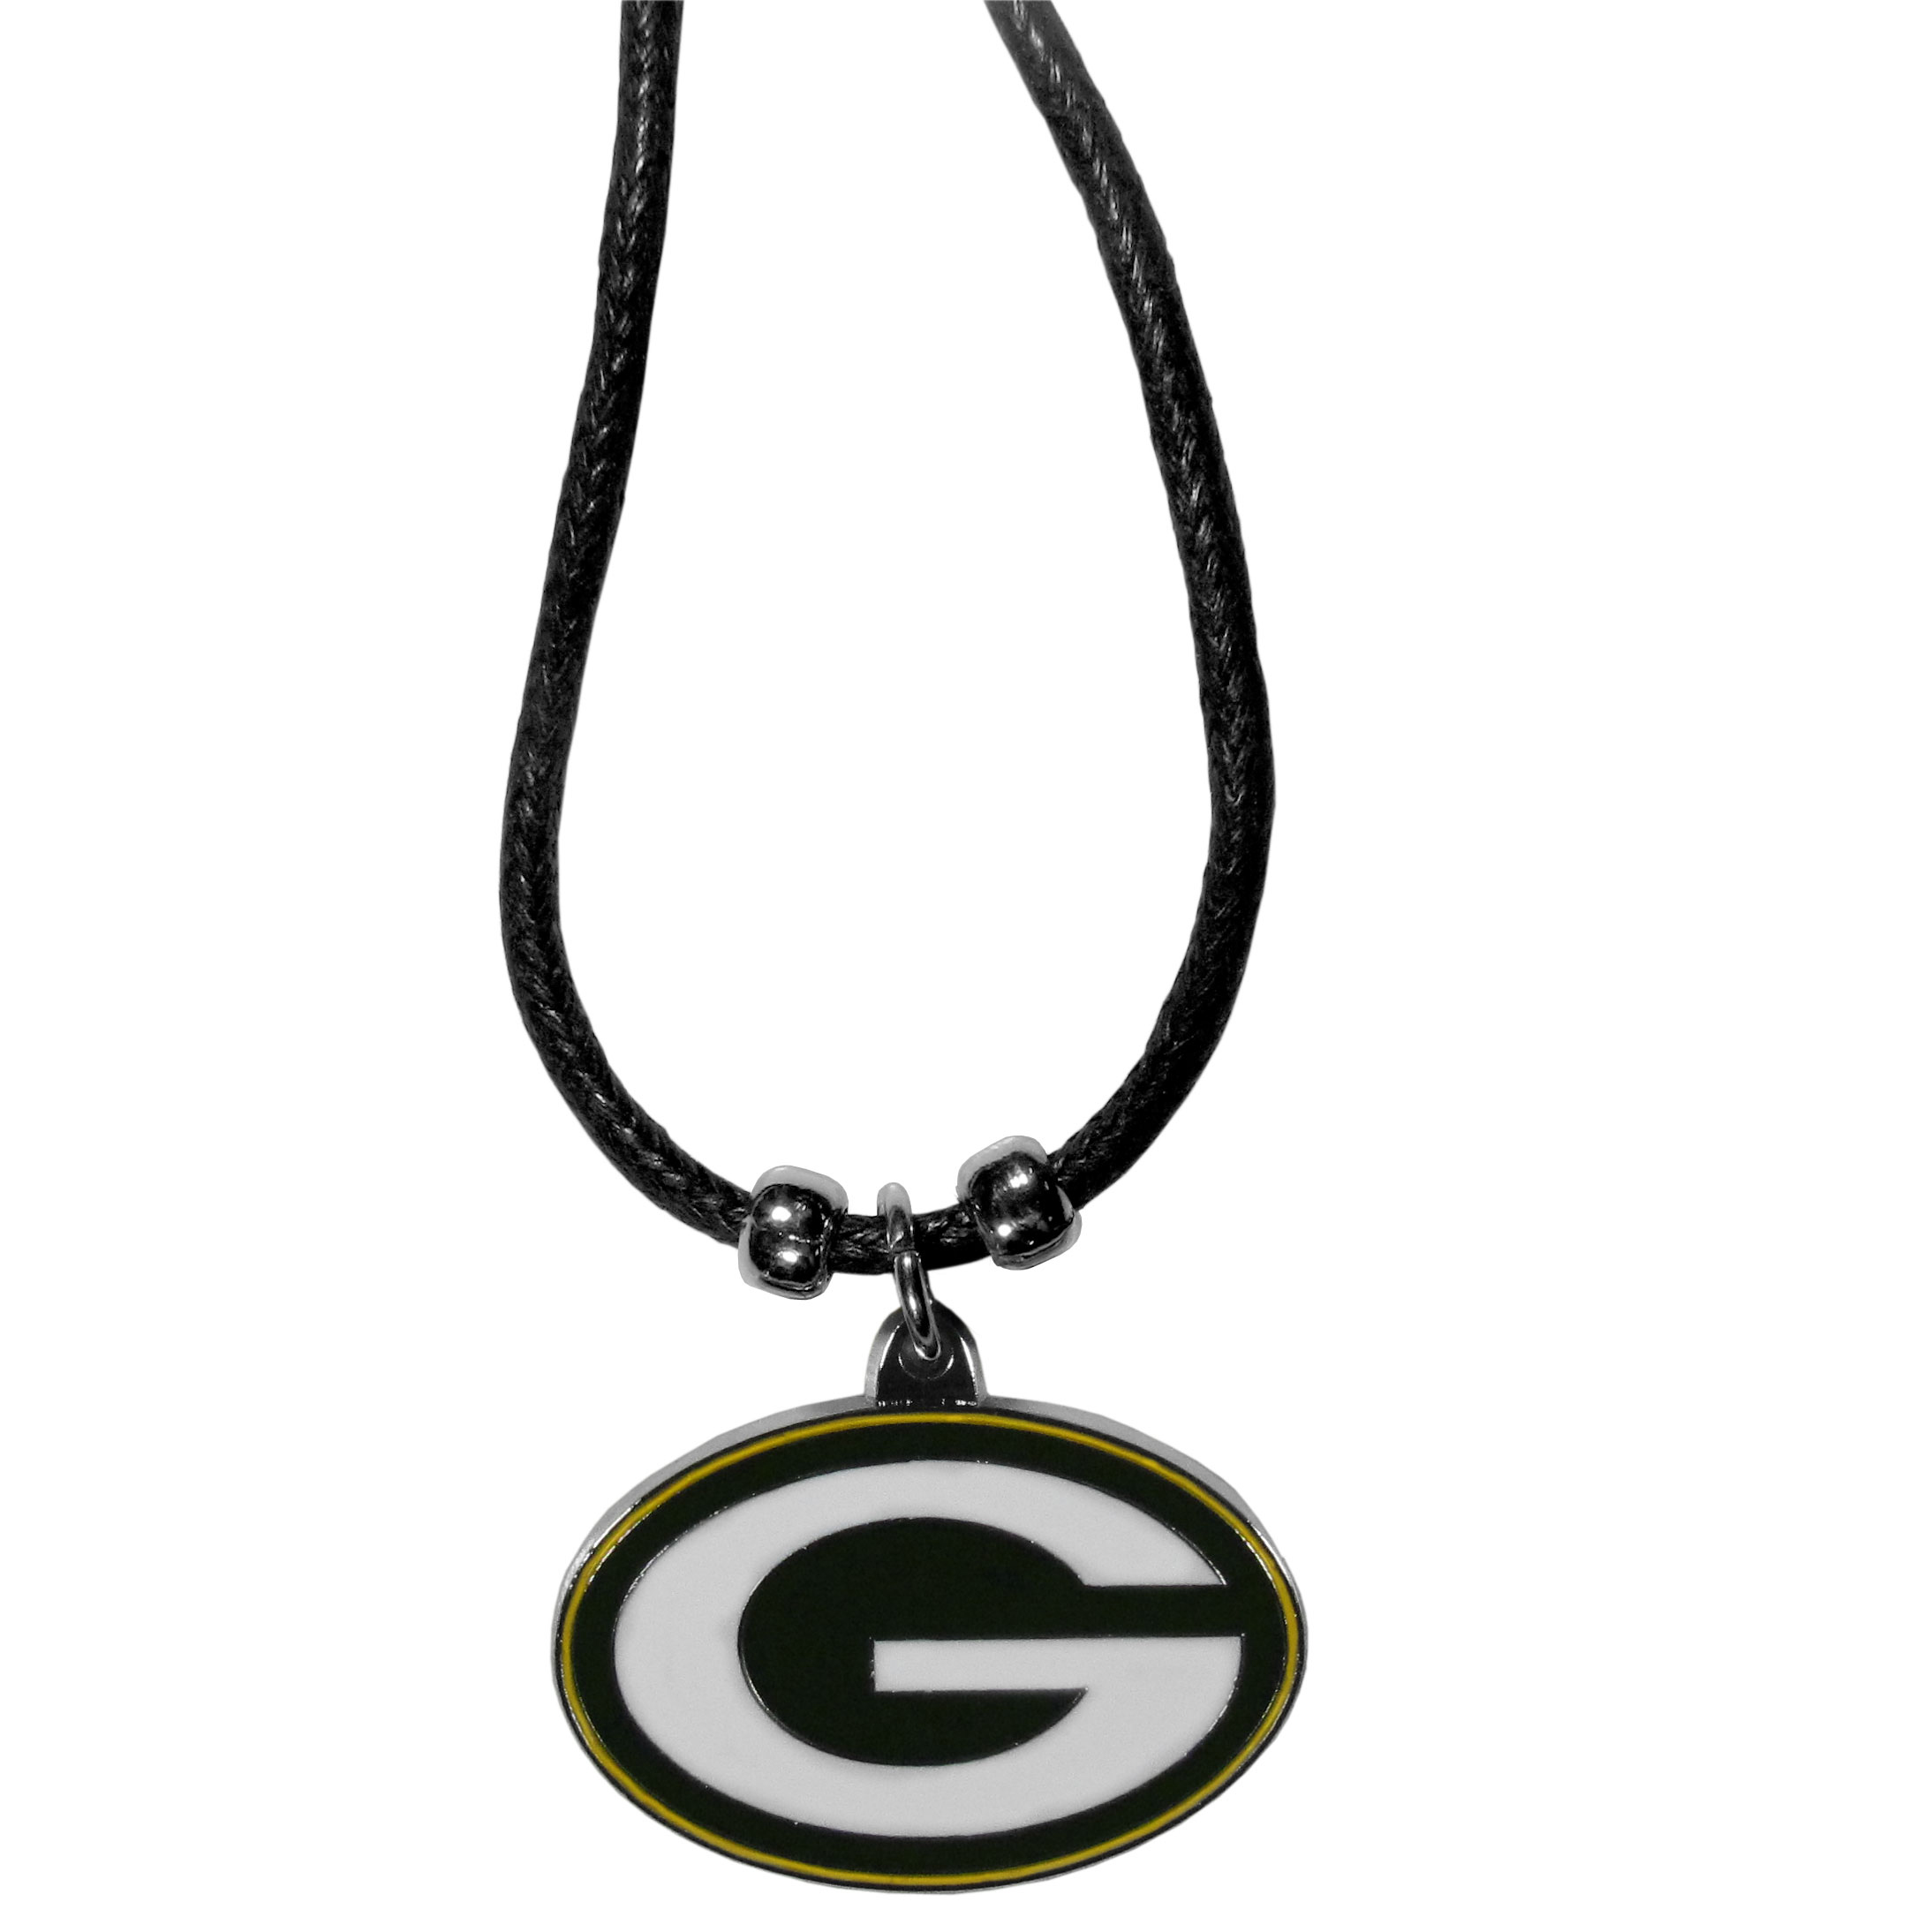 Green Bay Packers Cord Necklace - This classic style cotton cord necklace features an extra large Green Bay Packers pendant on a 21 inch cord.